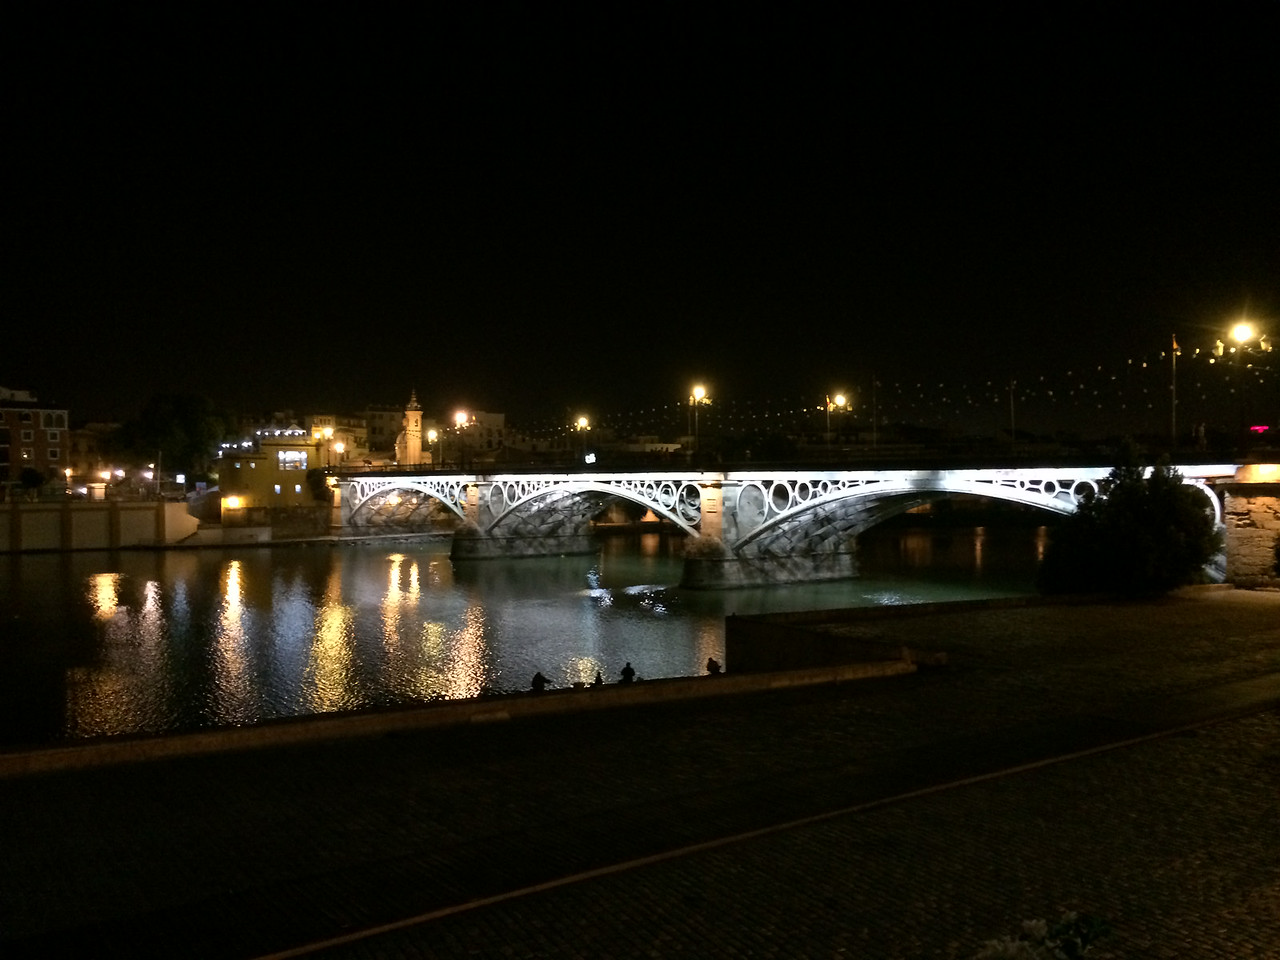 The Triana bridge was built in the mid 1800's similarly designed as the Pont Neuf bridge in Paris, France. It connects Seville to Triana district across the Guadalquivir river.